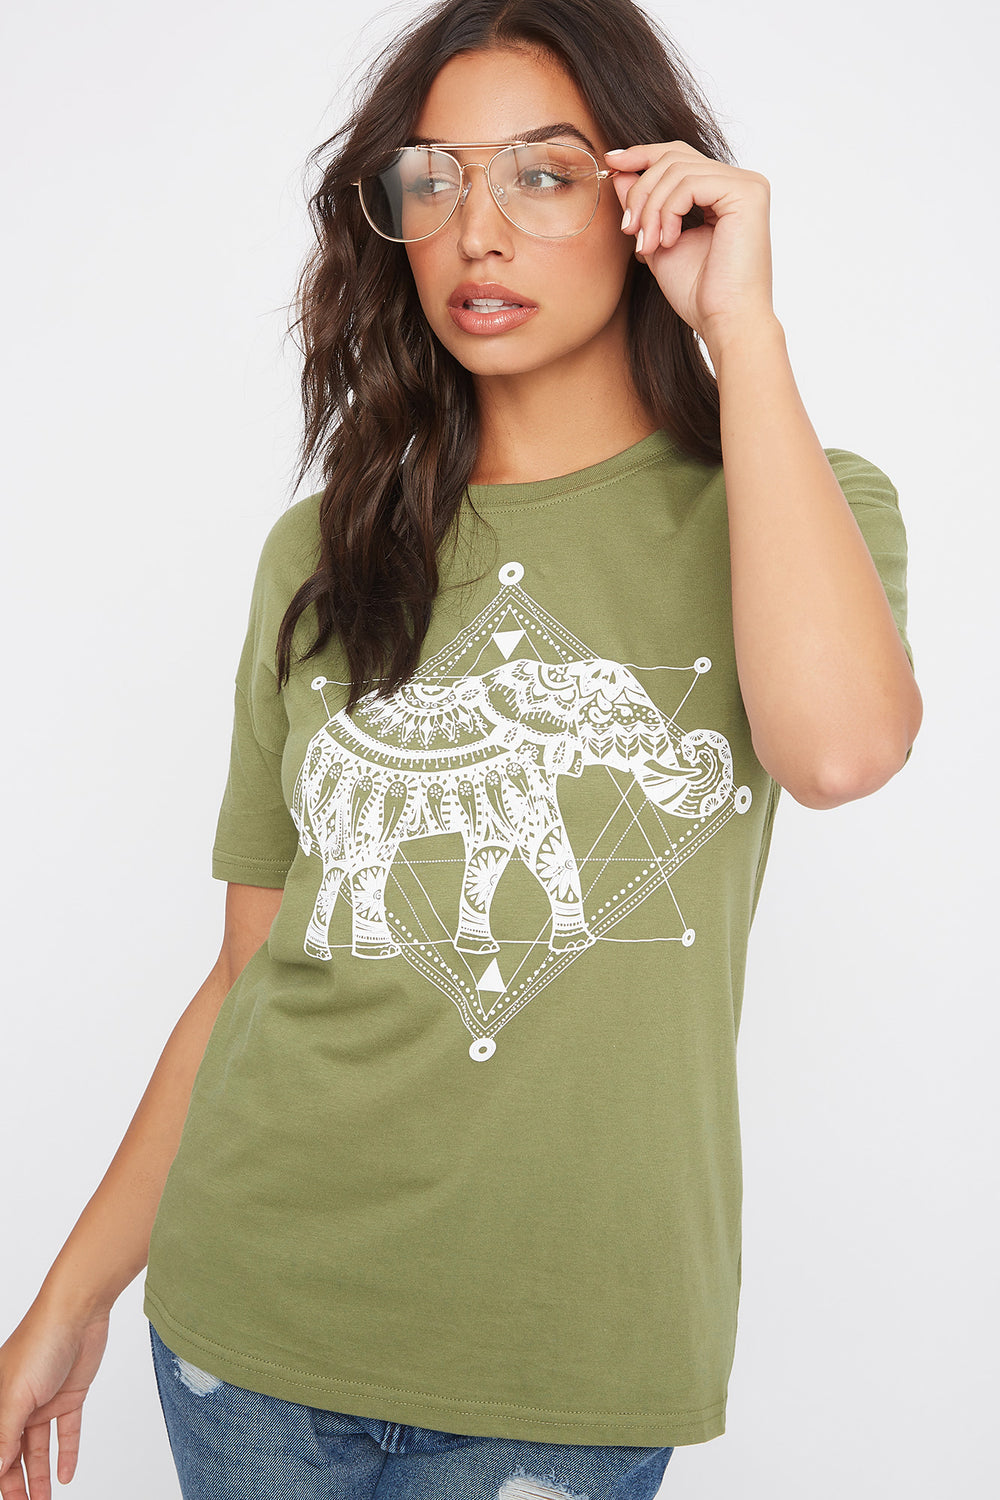 Graphic Mystic Elephant T-Shirt Dark Green